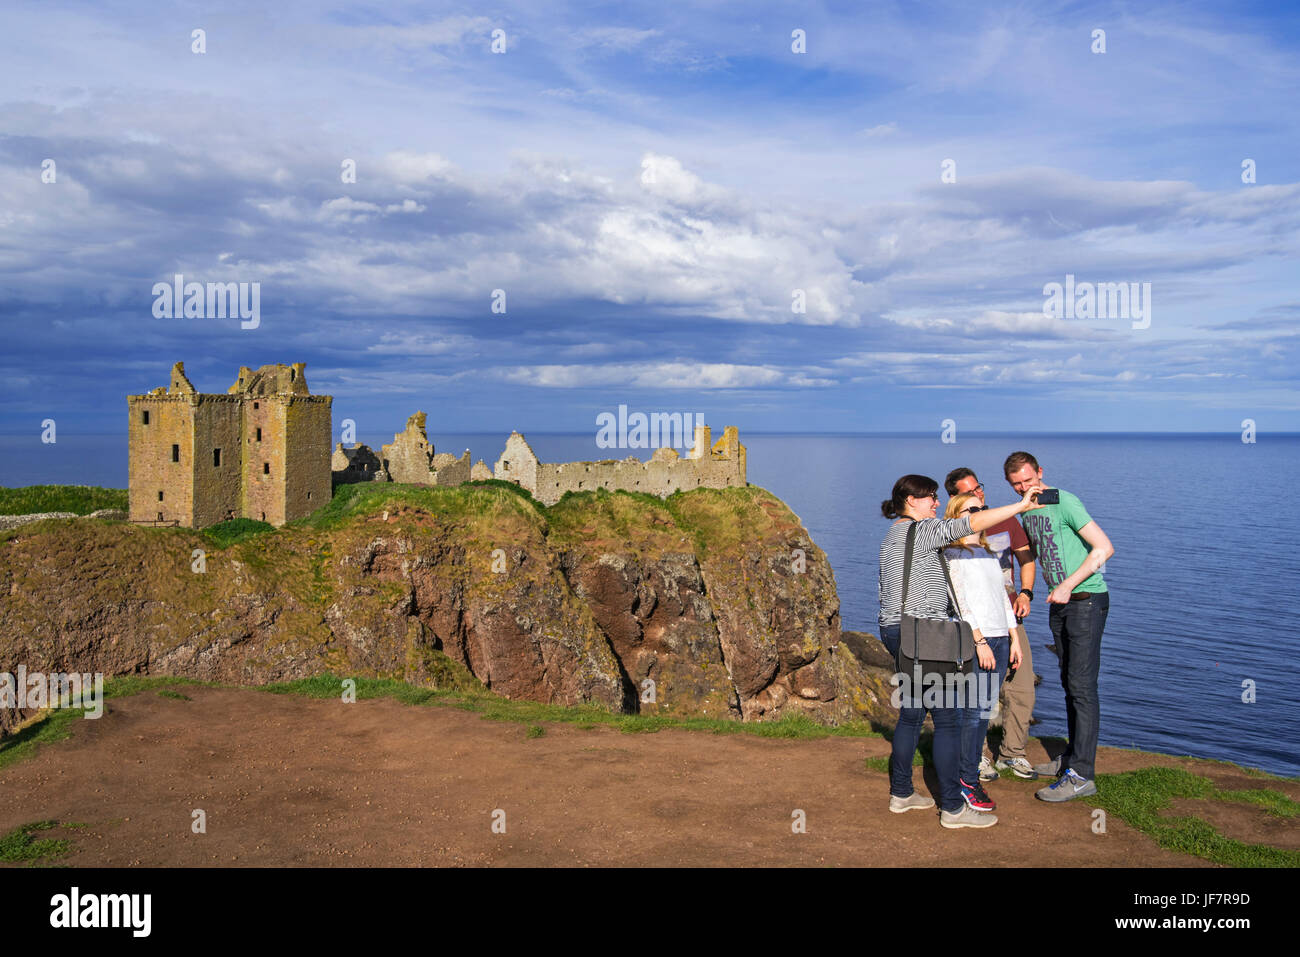 Tourists taking selfies at Dunnottar Castle, ruined medieval fortress near Stonehaven on cliff along the North Sea - Stock Image